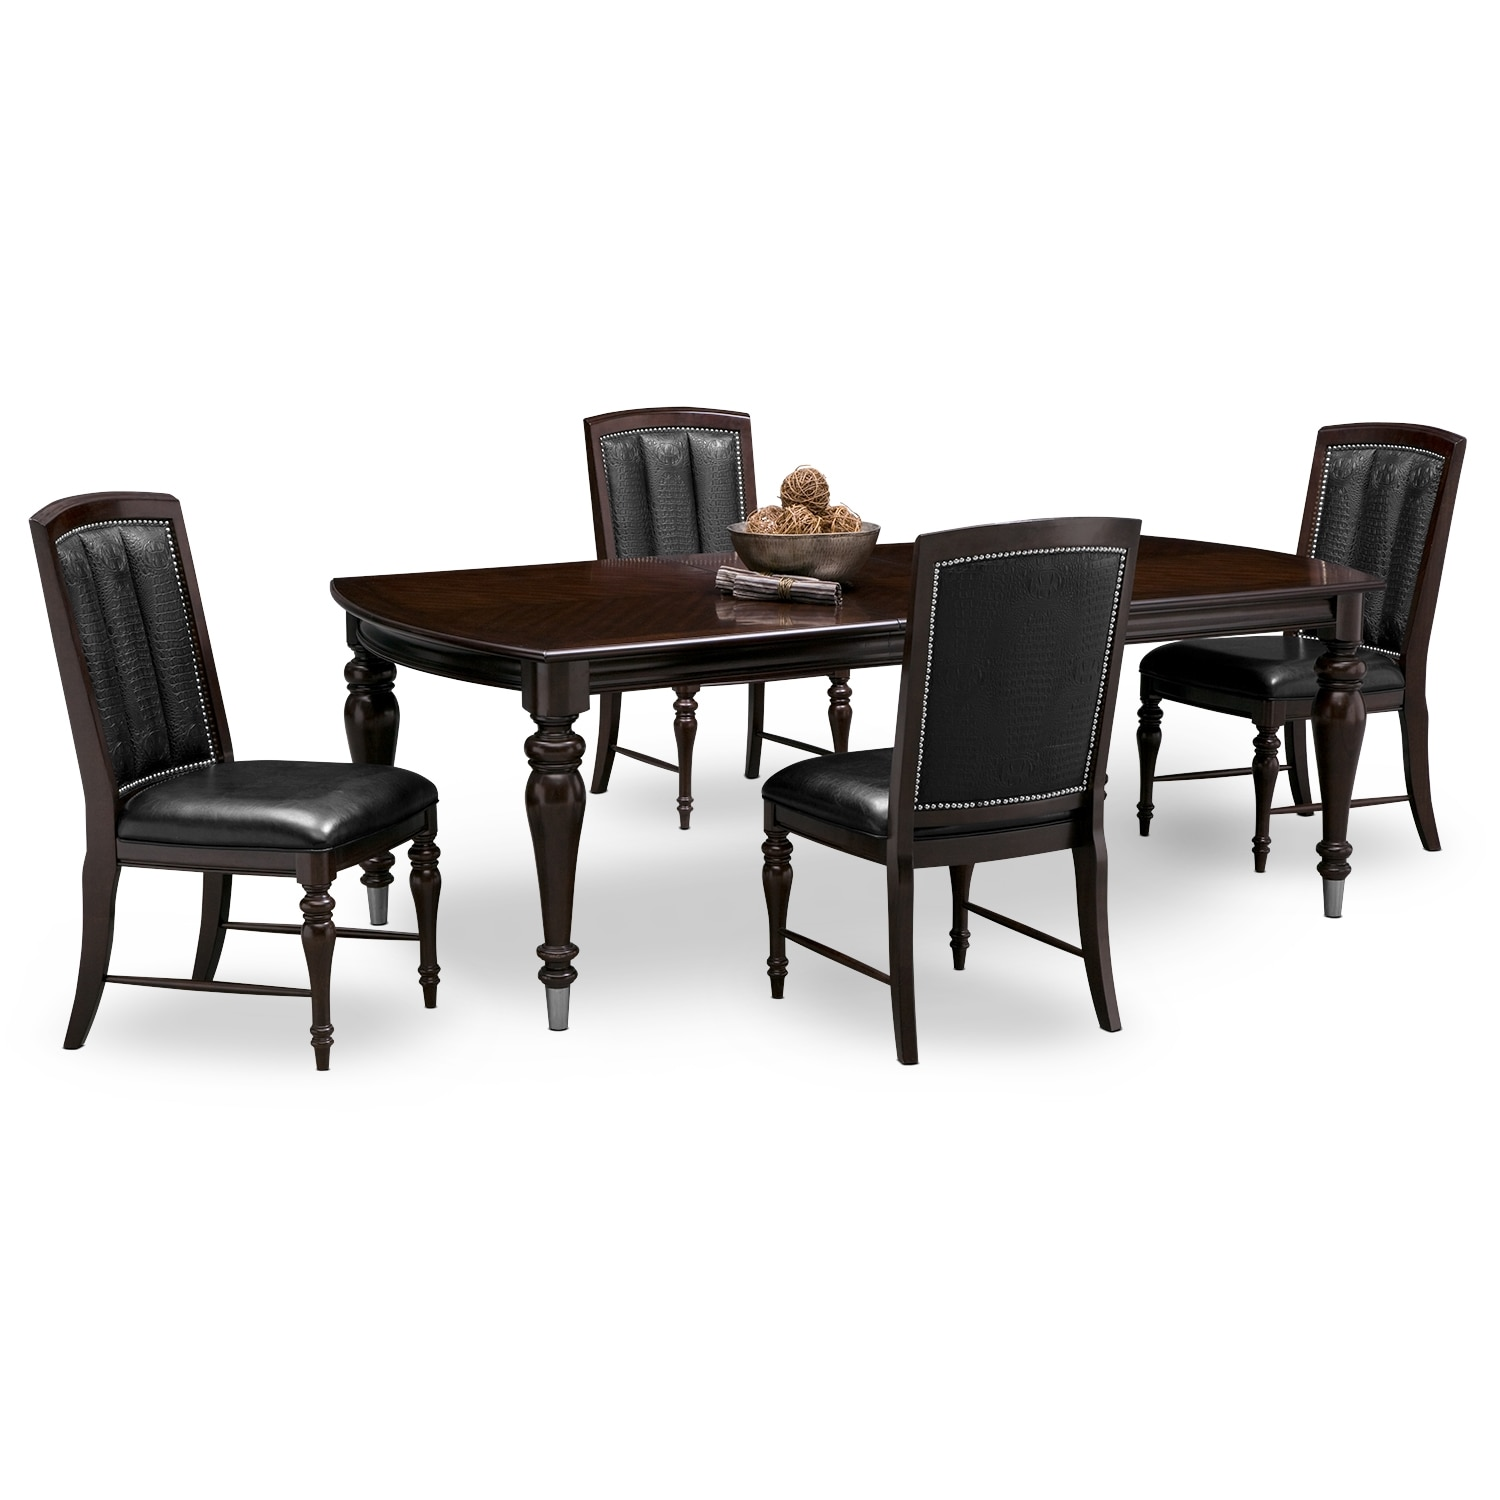 Was $1,189.95 Today $1,070.96 Esquire Table And 4 Chairs   Cherry By American  Signature